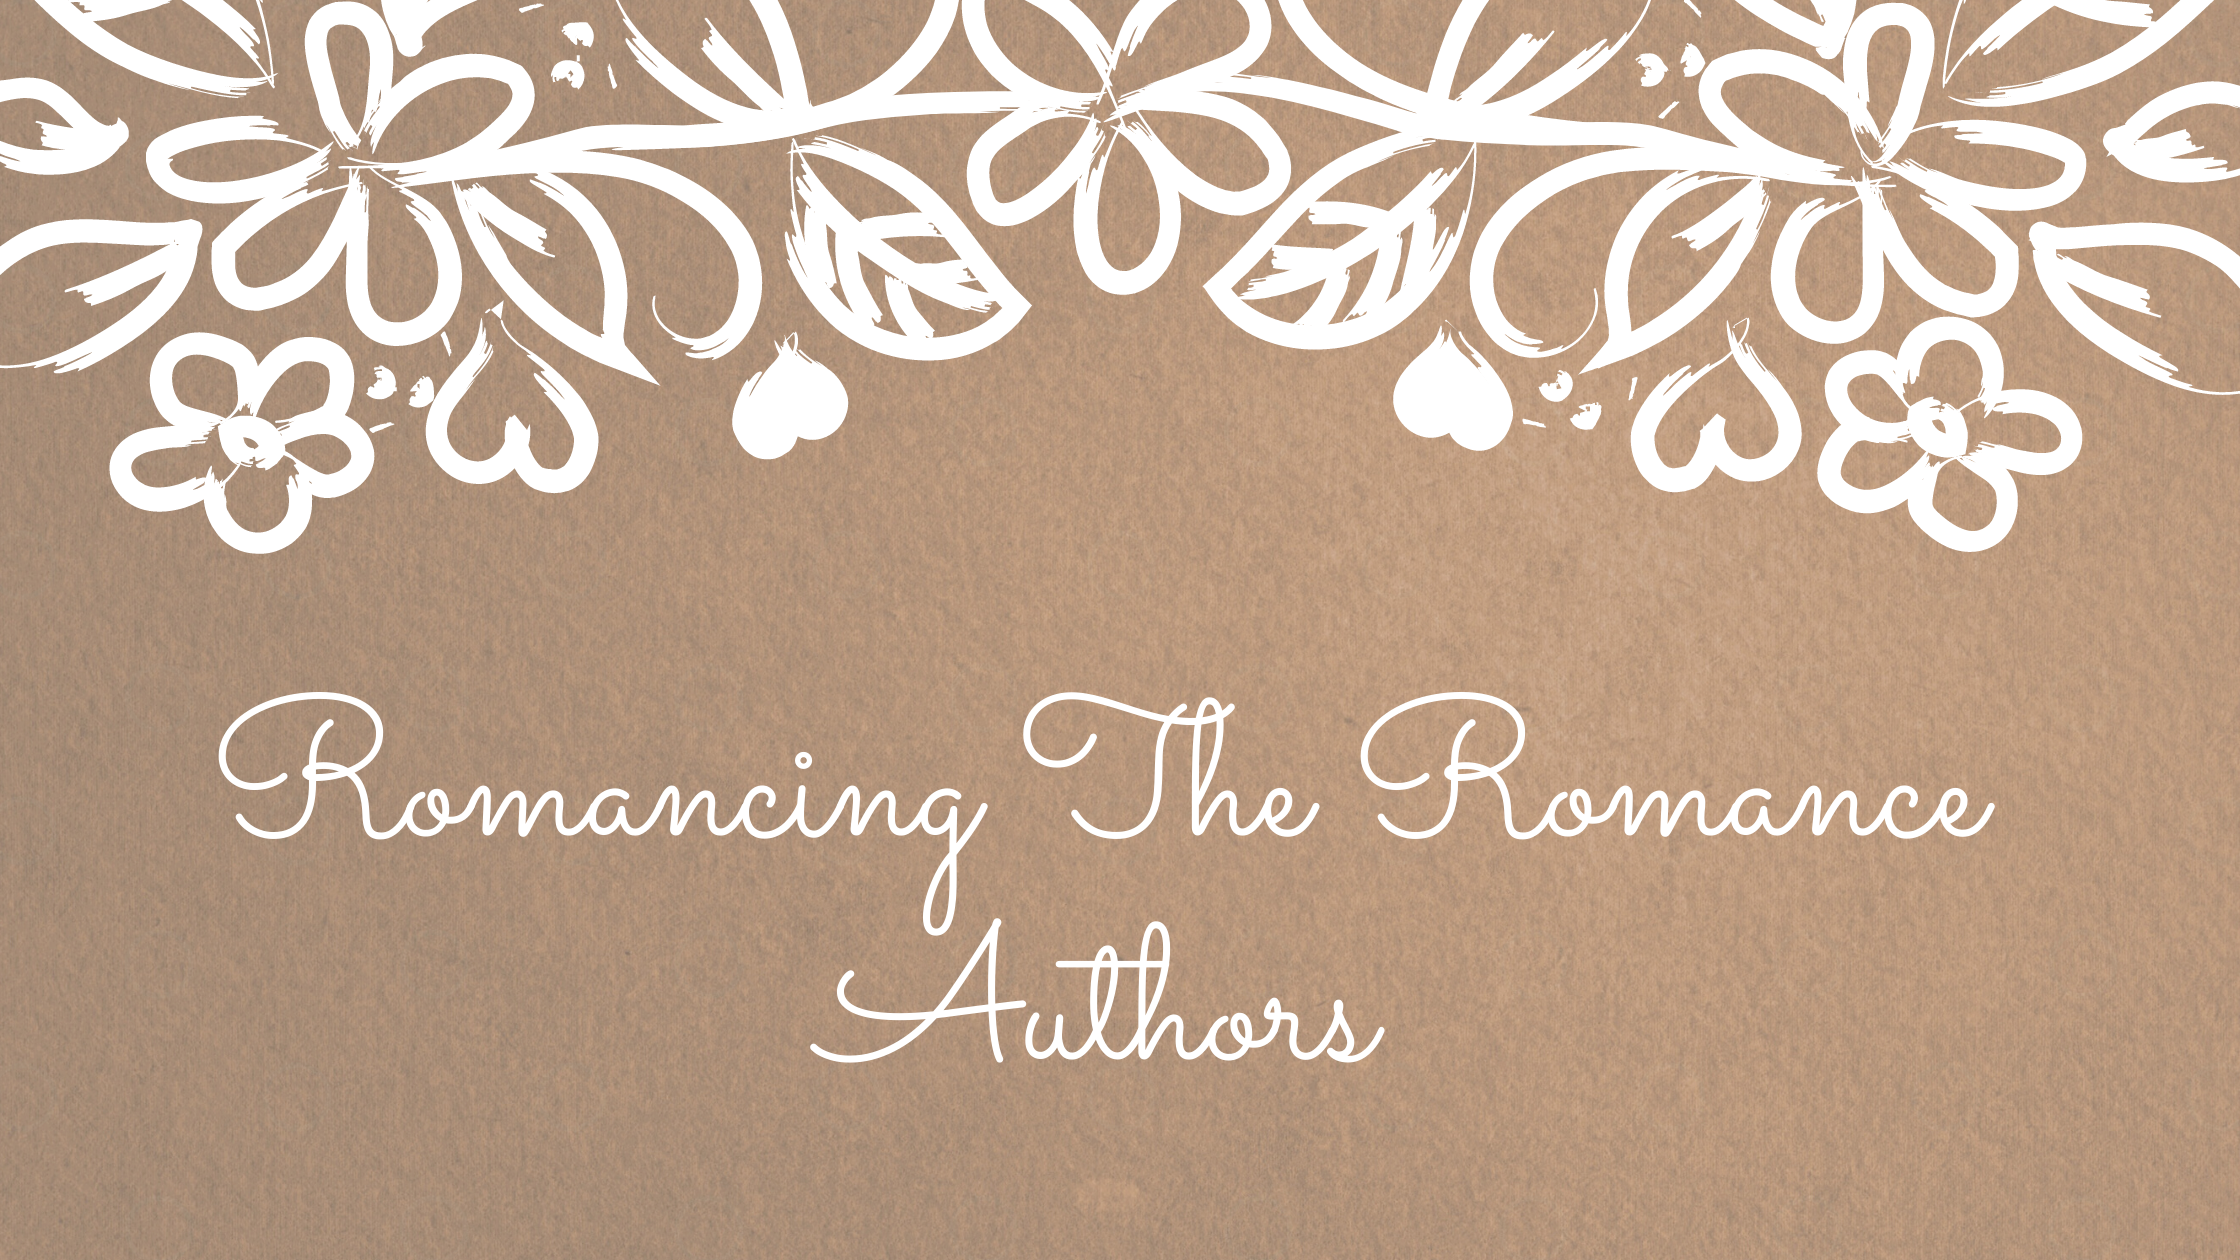 Romancing The Romance Authors